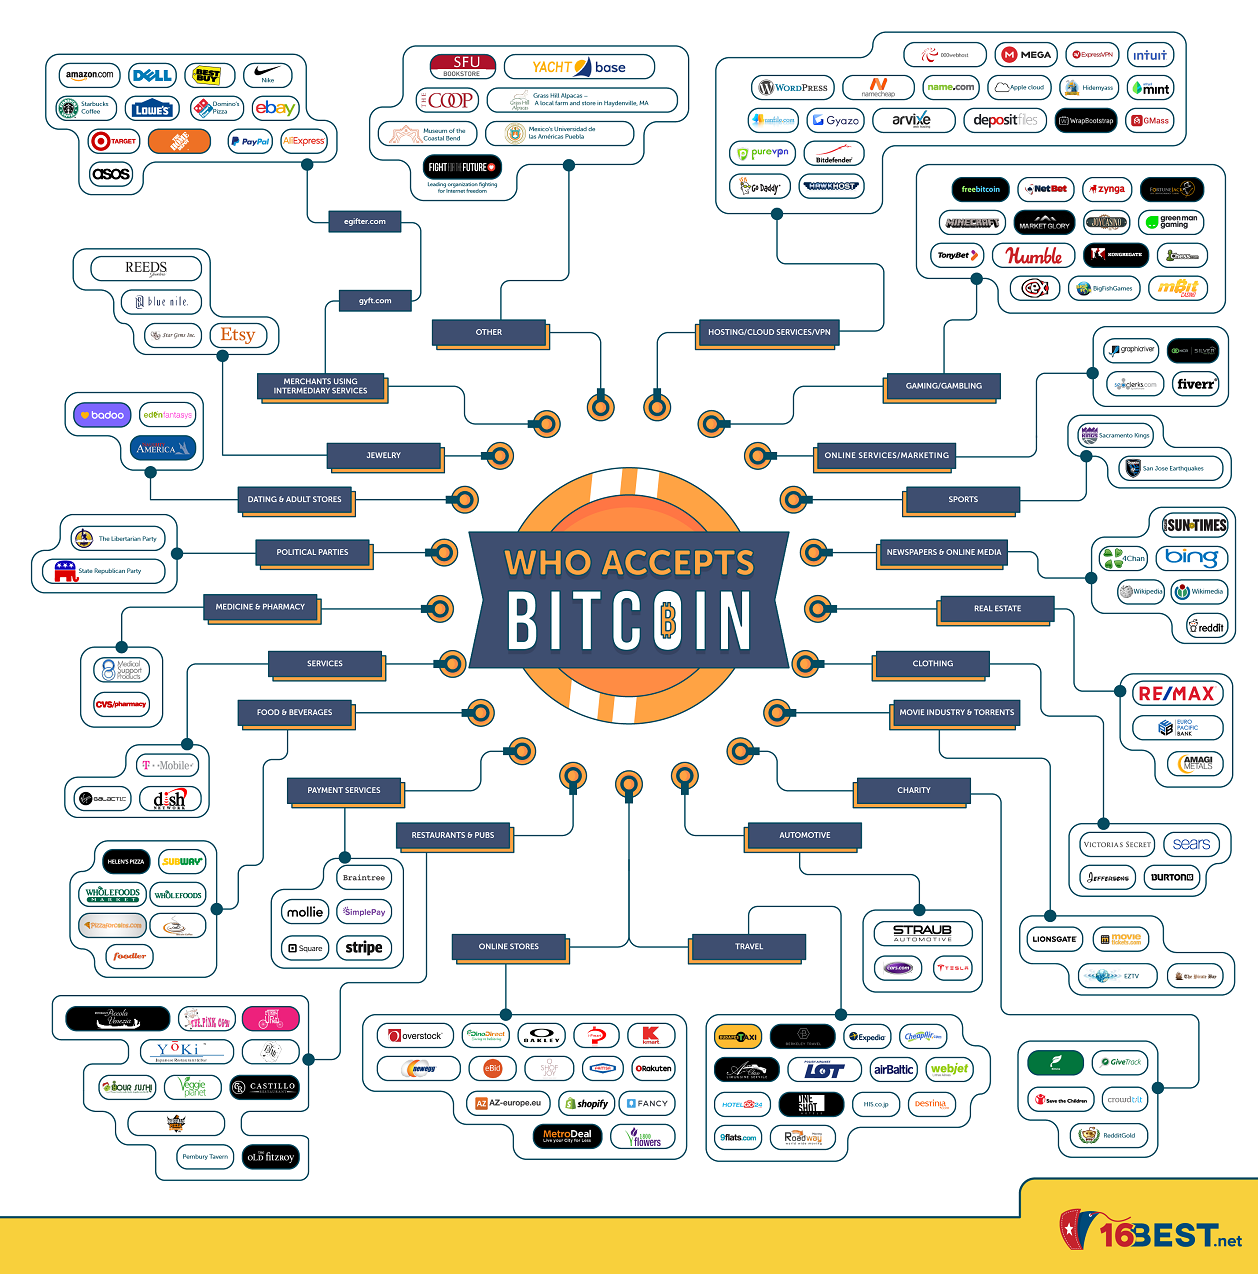 Who Accepts Bitcoin #infographic